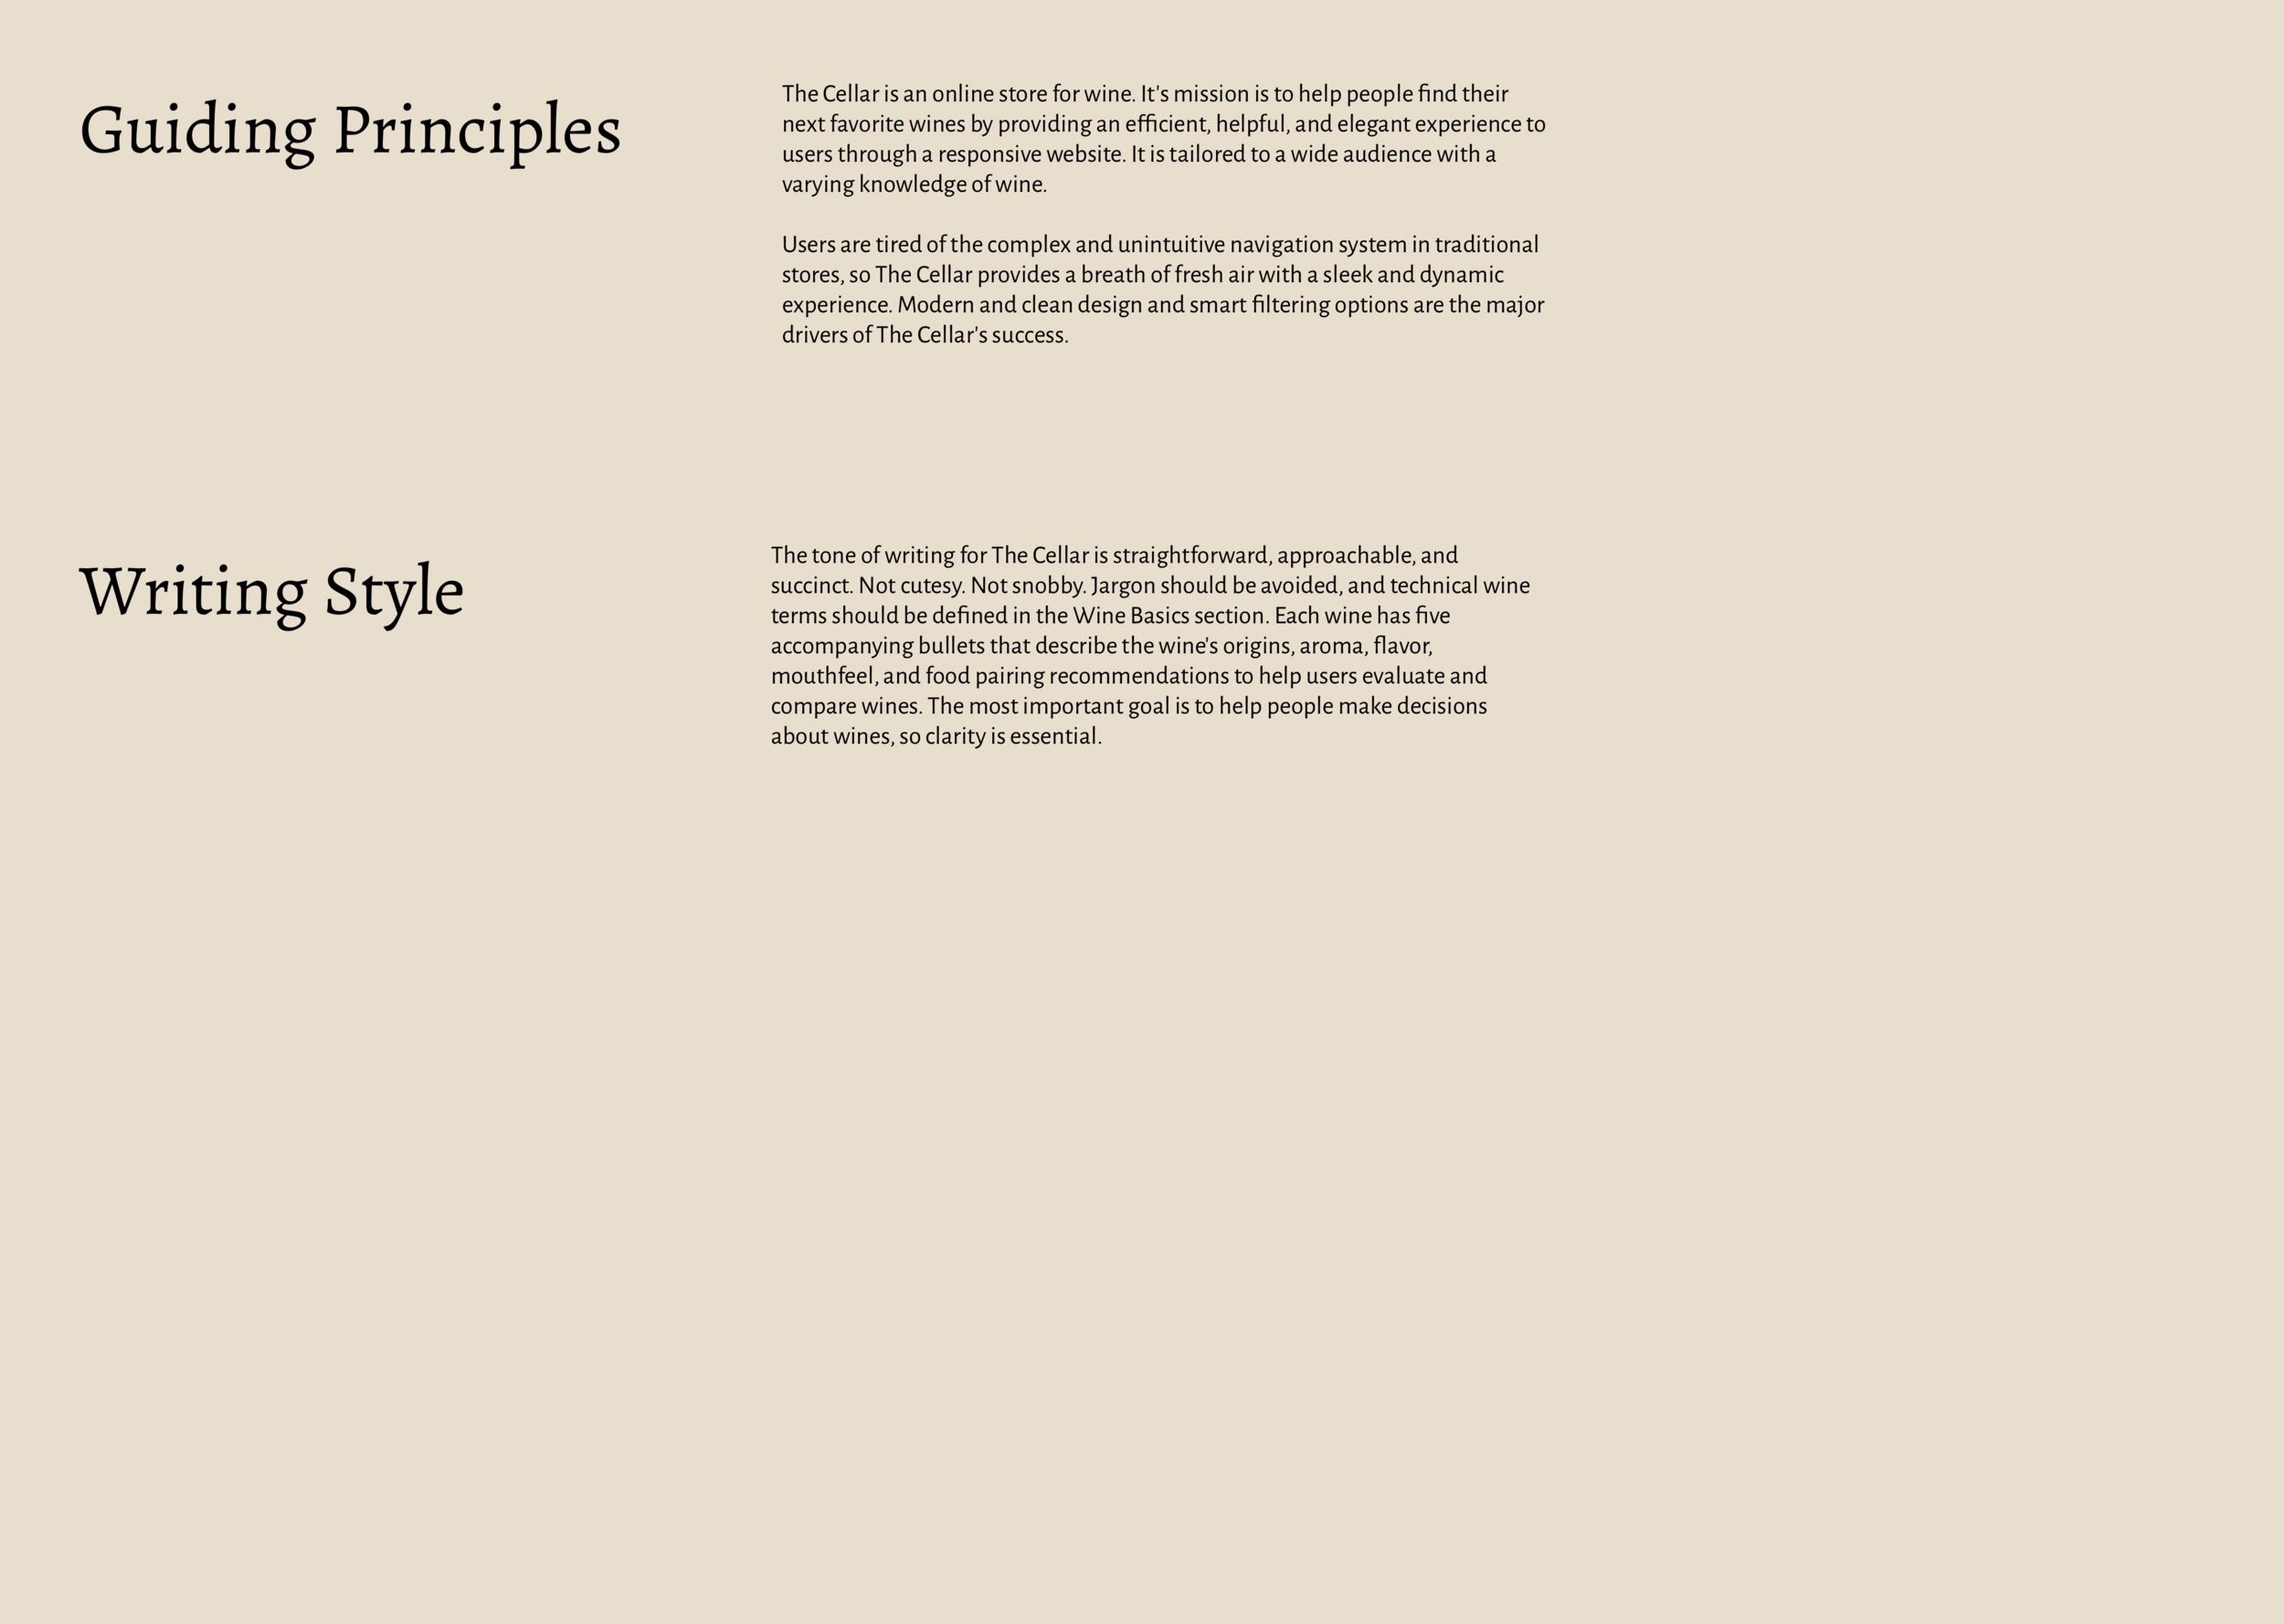 Guiding Principles and Writing Style.png